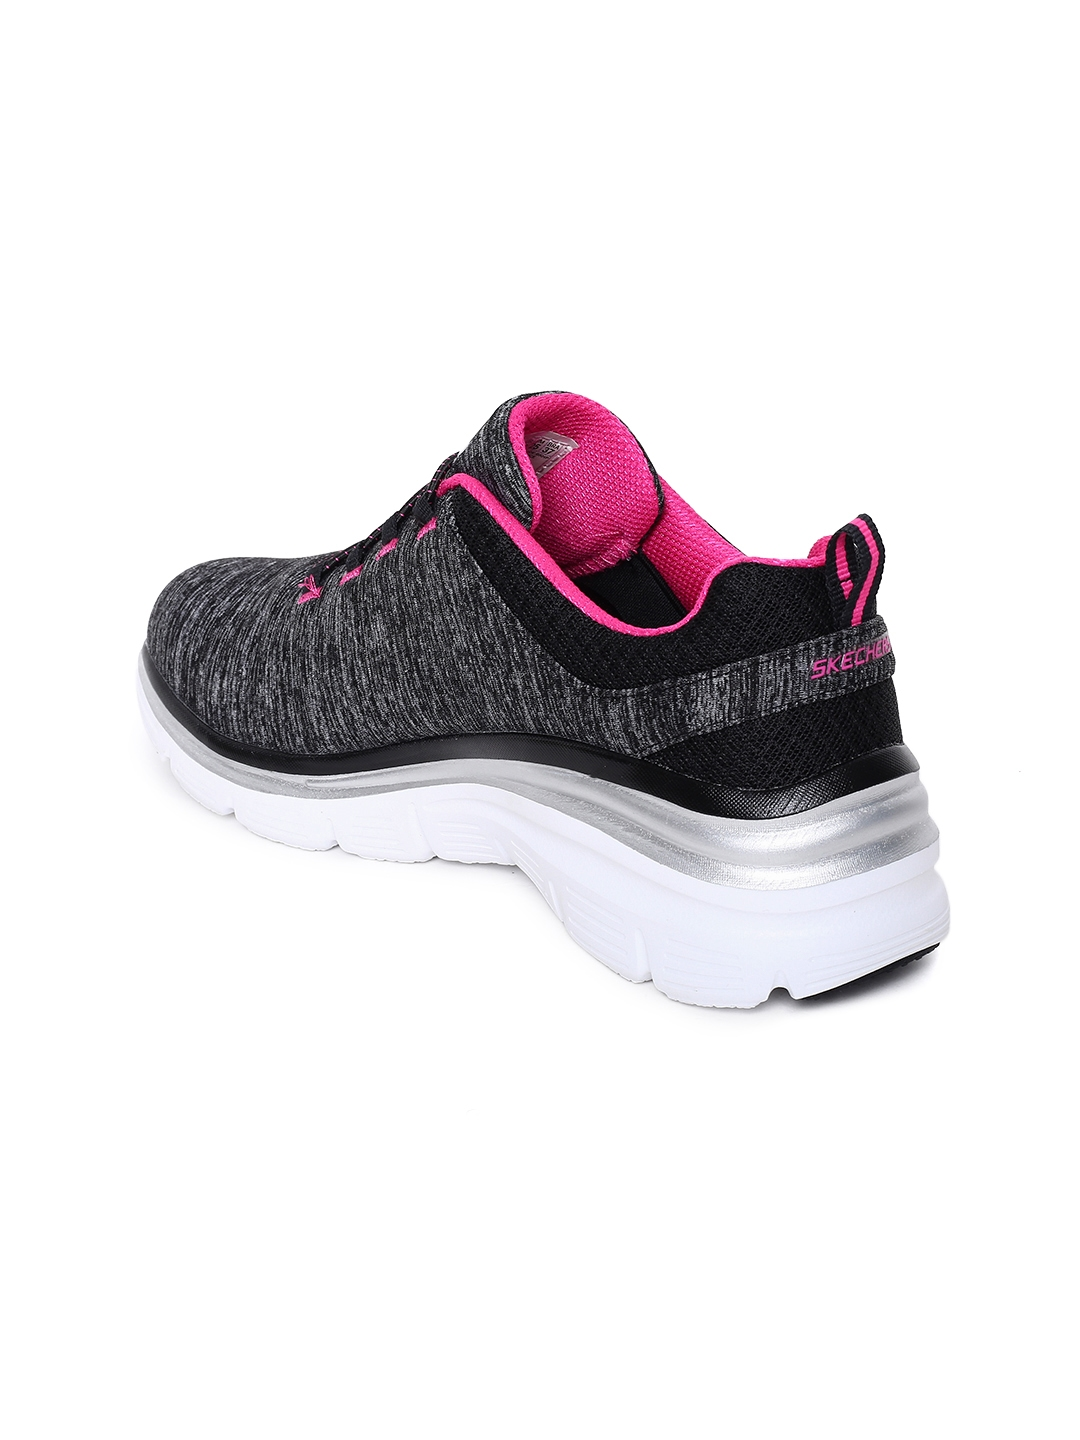 1284738c7a0 Buy Skechers Women Black Fashion Fit Up A Level Slip On Sneakers ...